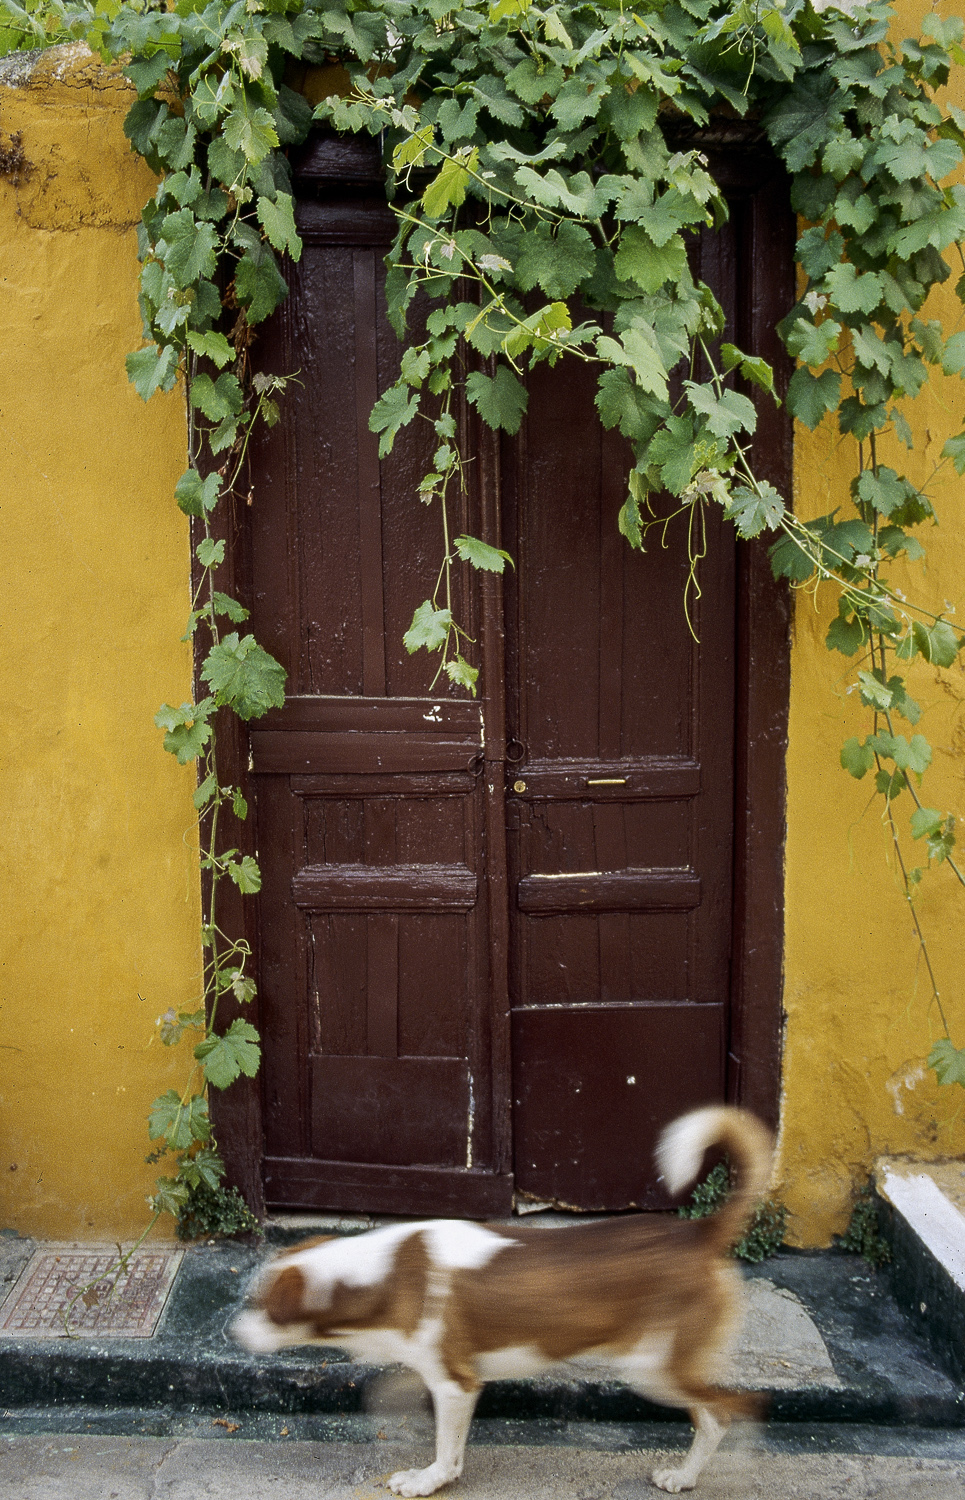 Dog and door - Athens, 1995